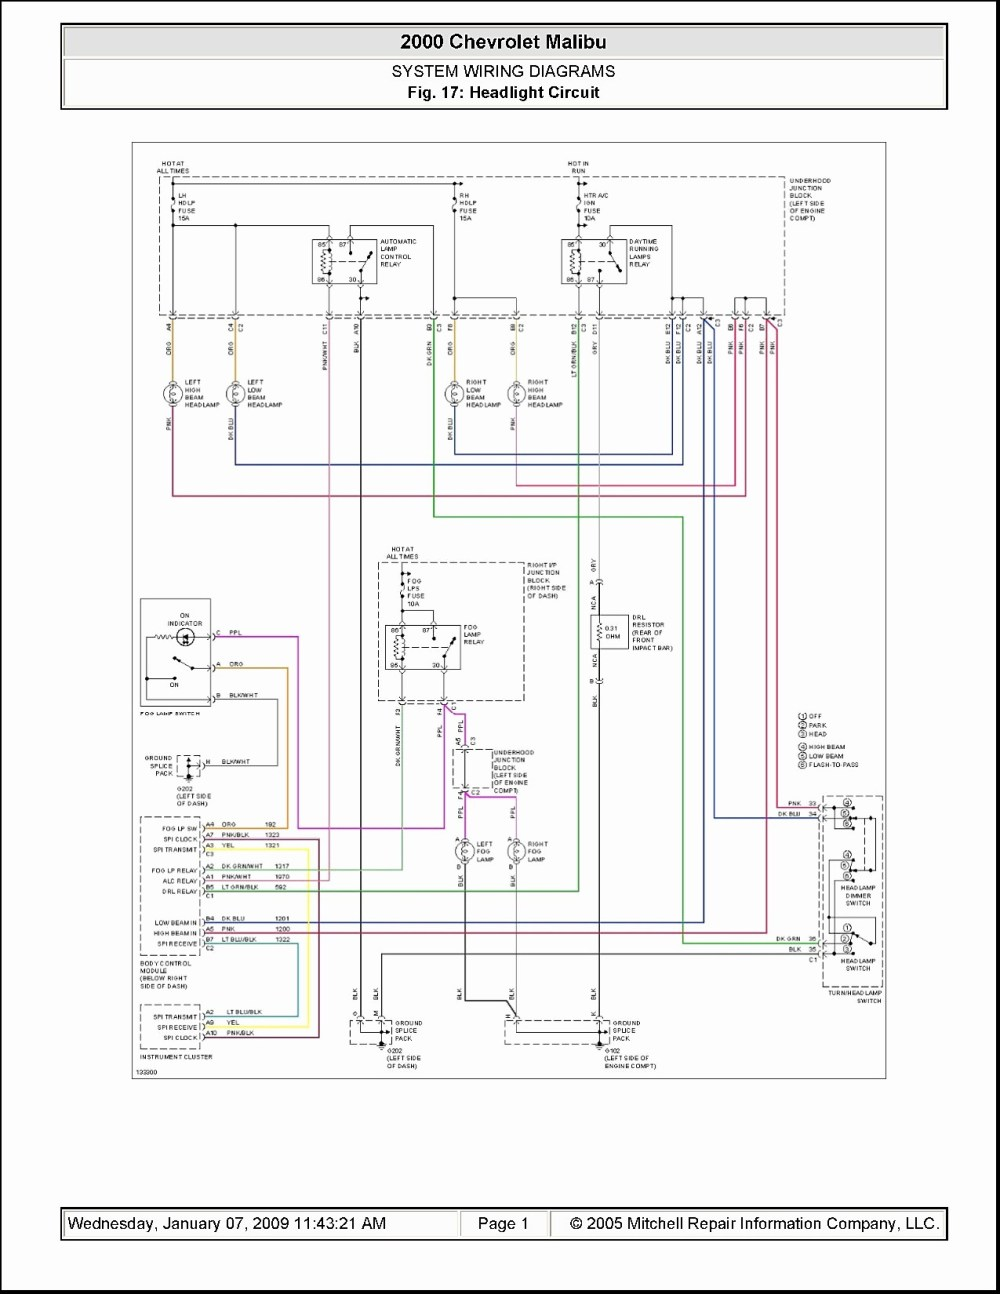 medium resolution of wiring diagrams 2003 hyundai santa fe door wire diagram 2003 hyundai santa fe ignition switch wiring diagram